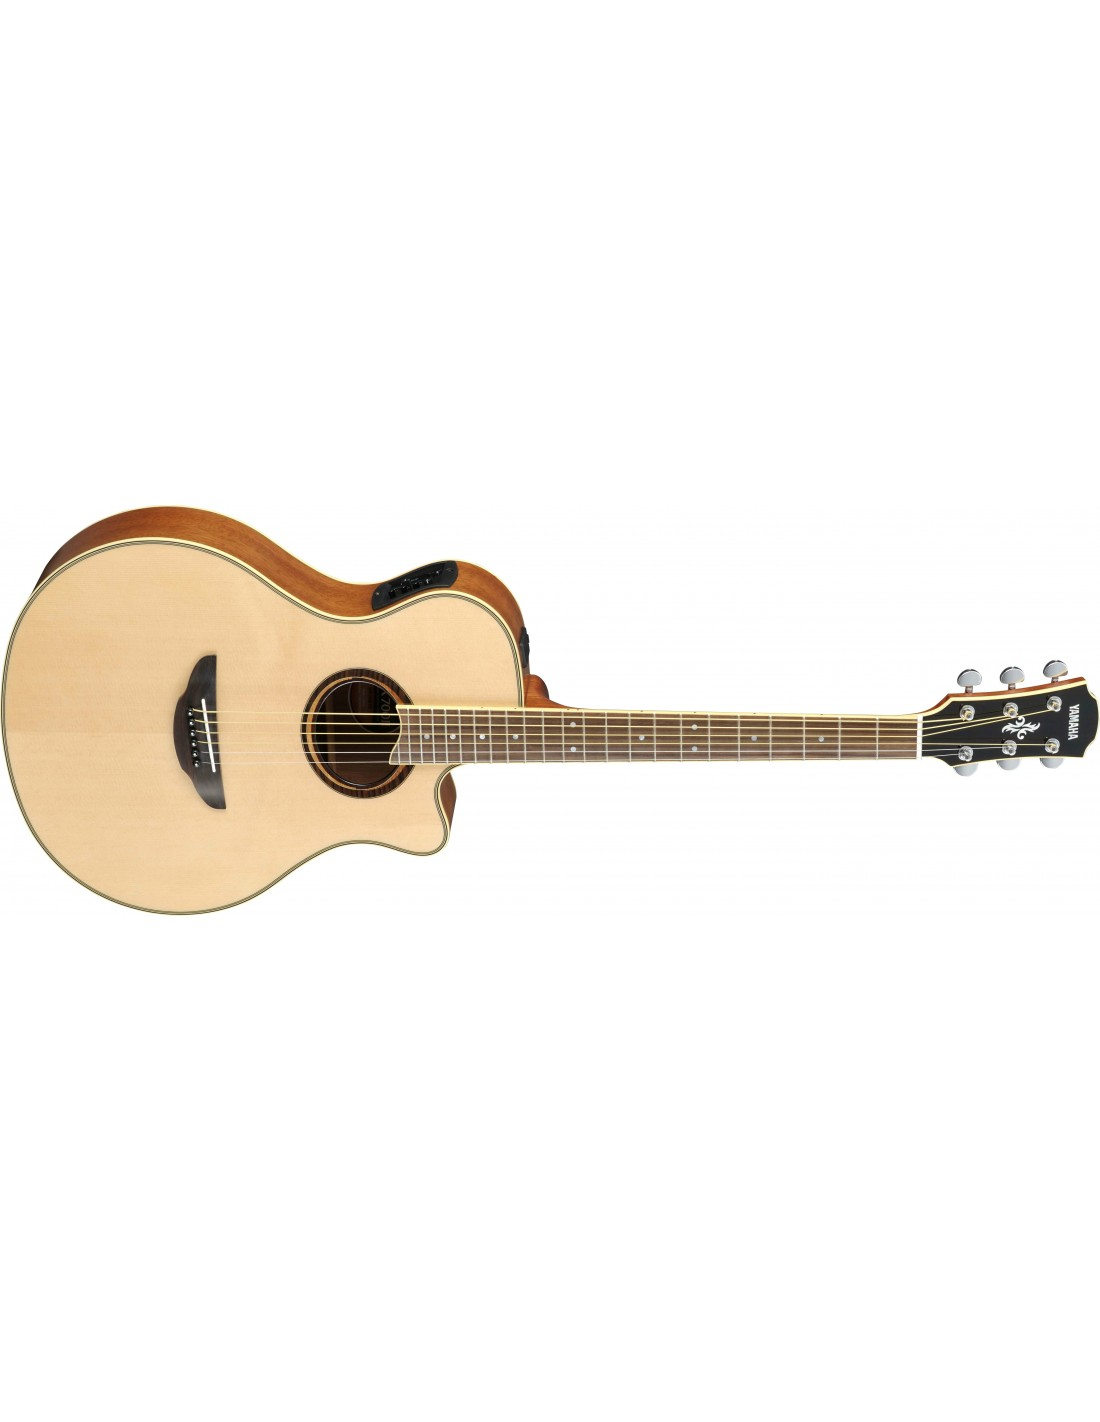 yamaha apx 700ii electro acoustic guitar natural. Black Bedroom Furniture Sets. Home Design Ideas